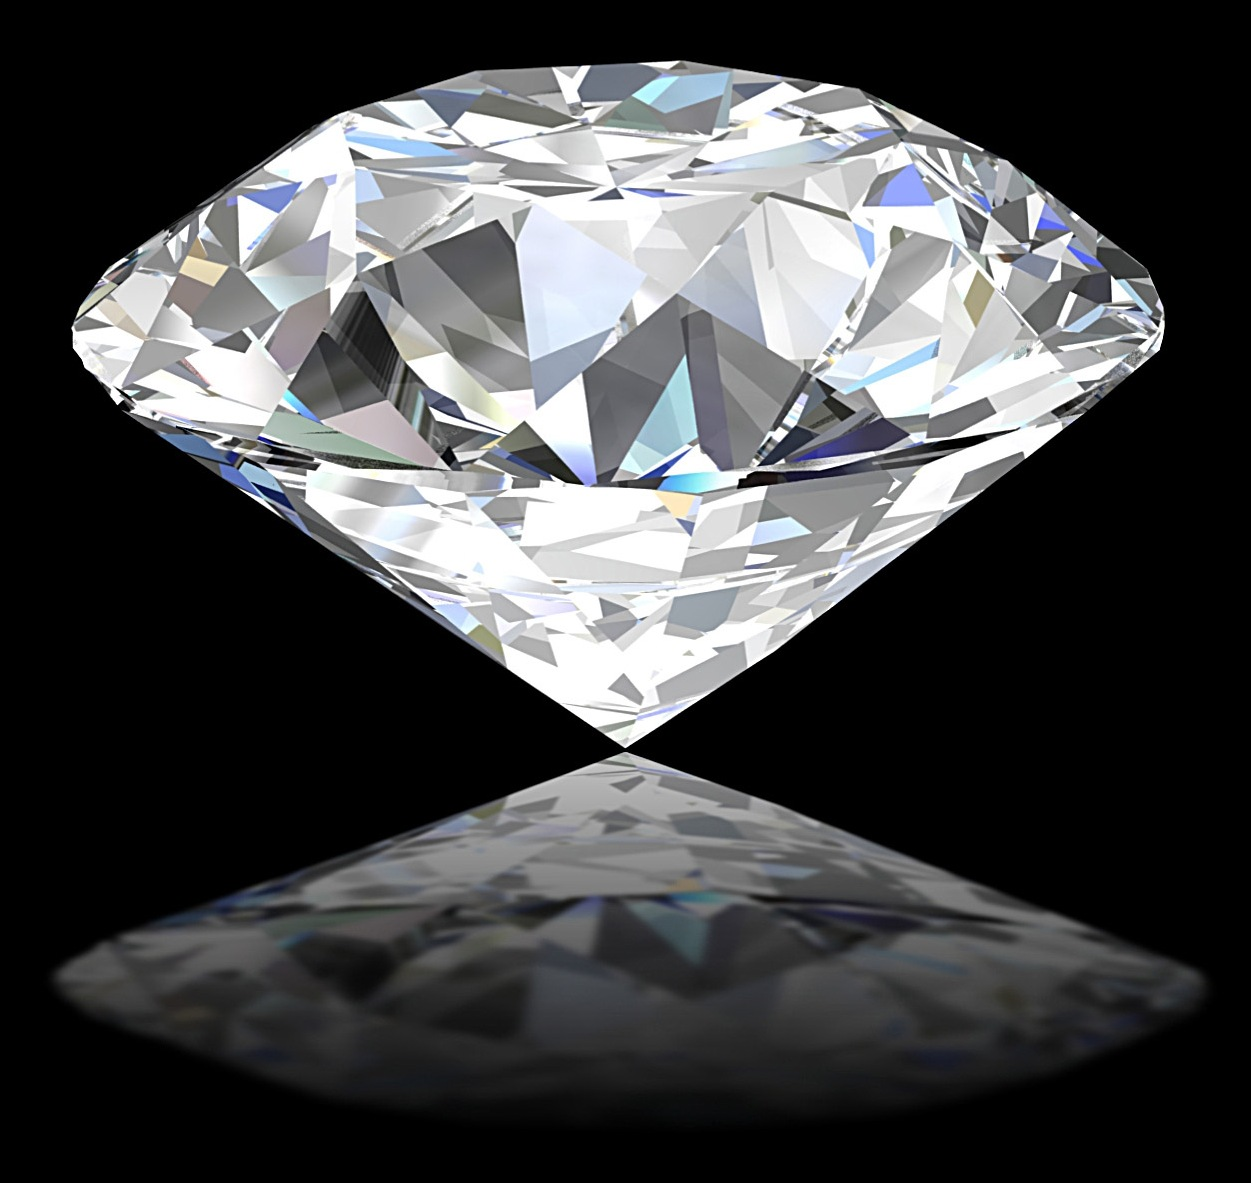 sons surat diamond wholesale supplier co pure available from malik